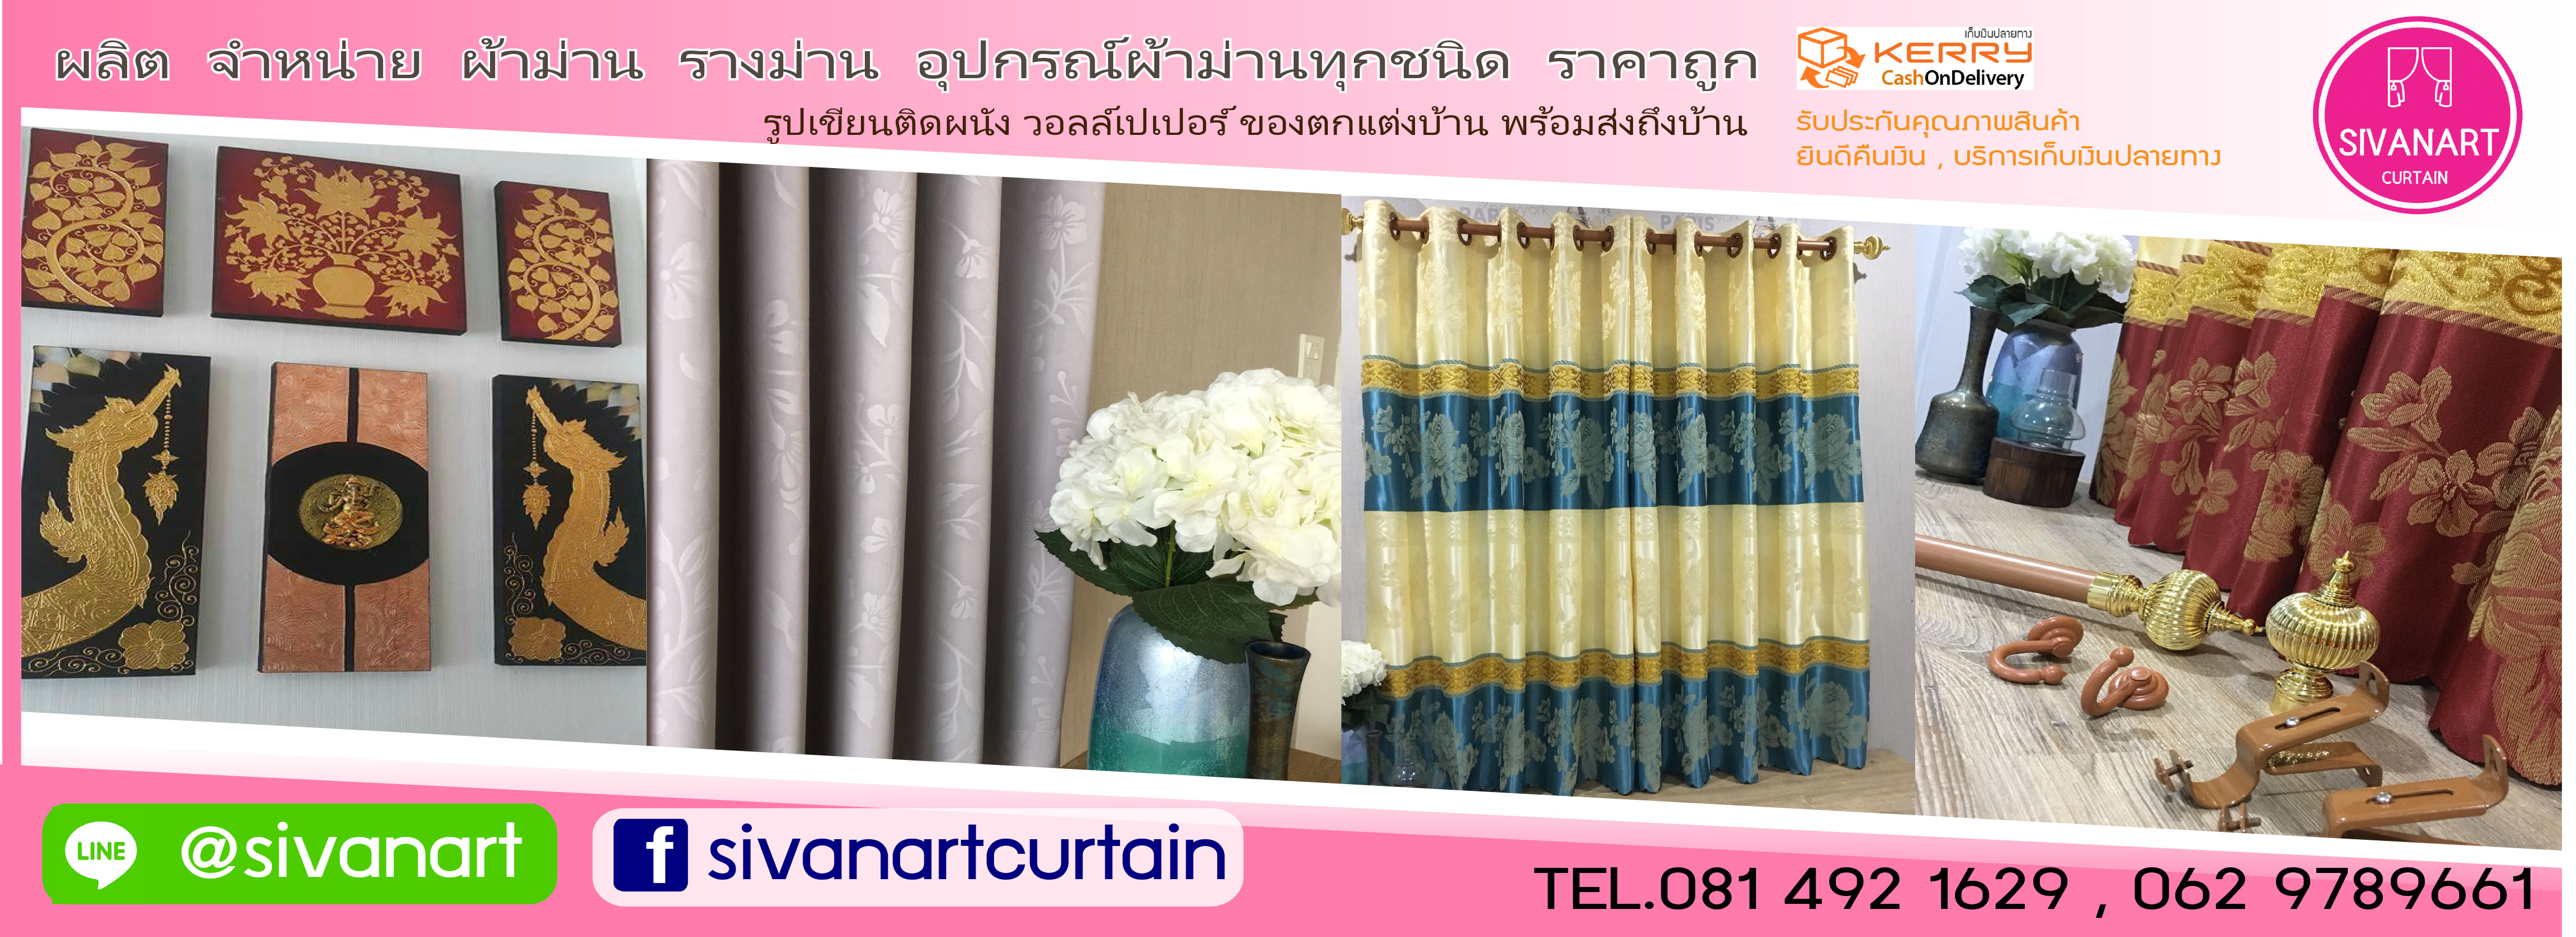 sivanartcurtain